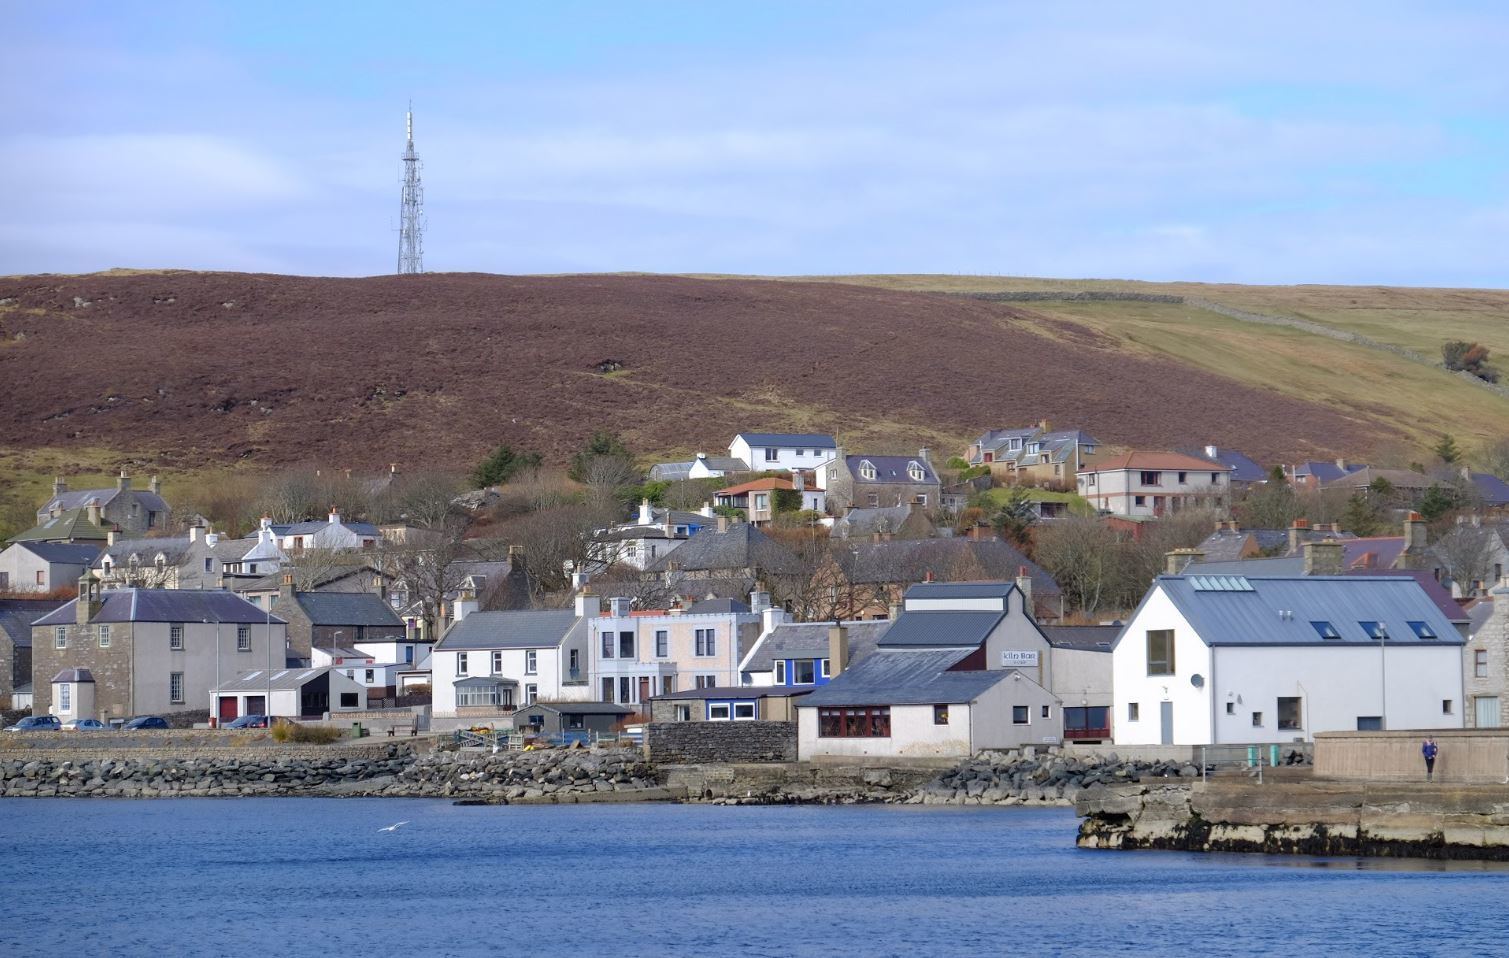 The Re-create Scalloway project will see the image of Scalloway change